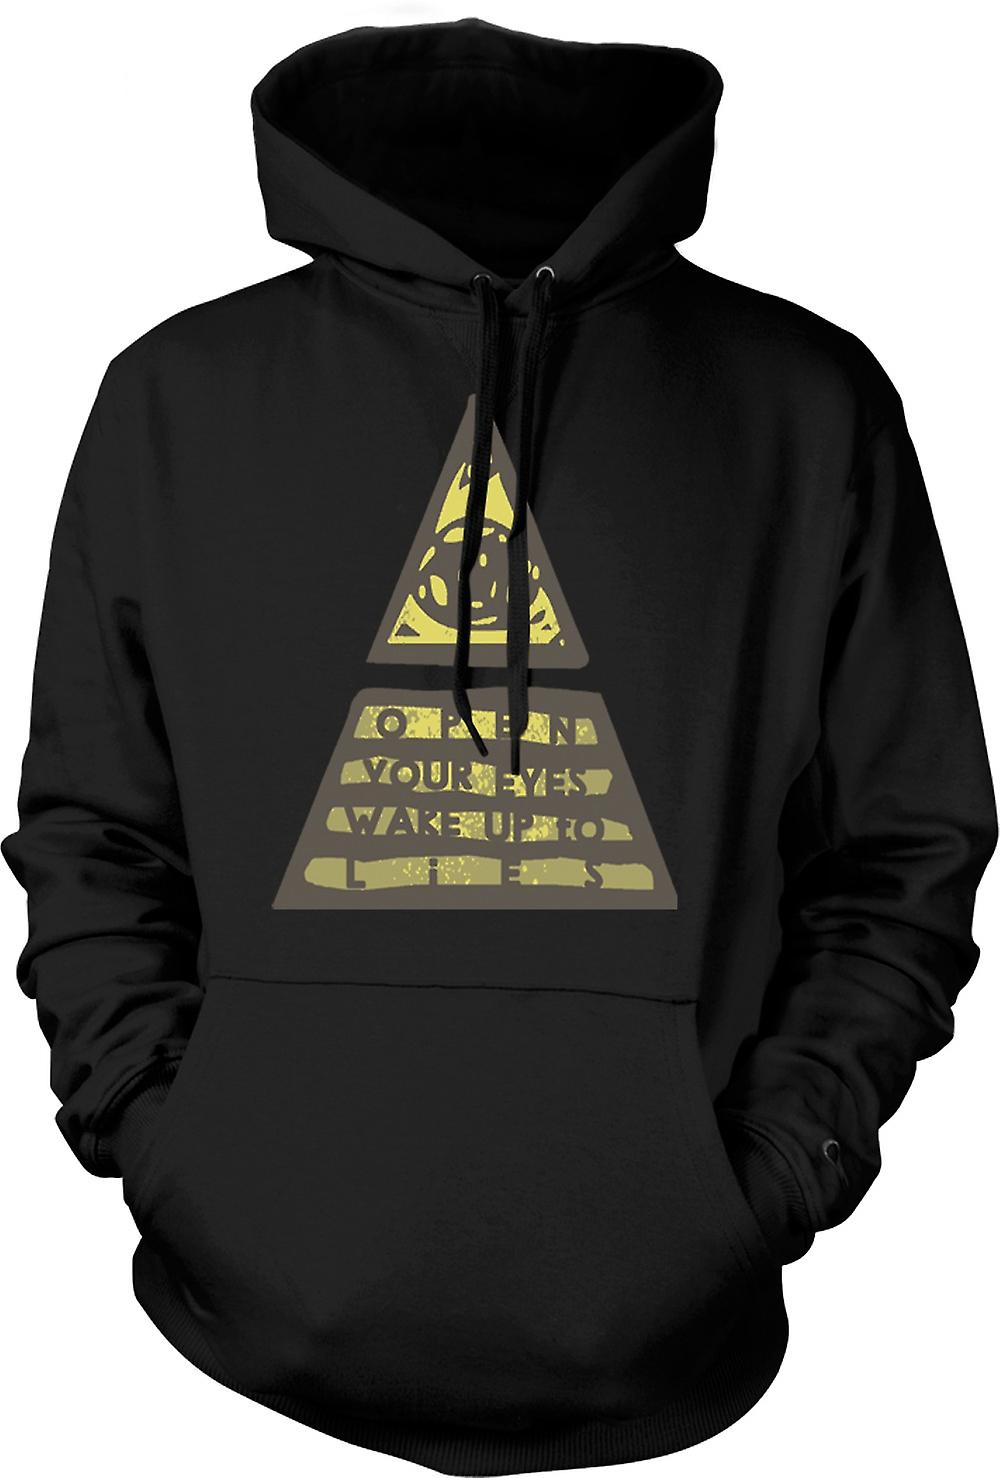 Kids Hoodie - Illuminati Wake Up To The Lies